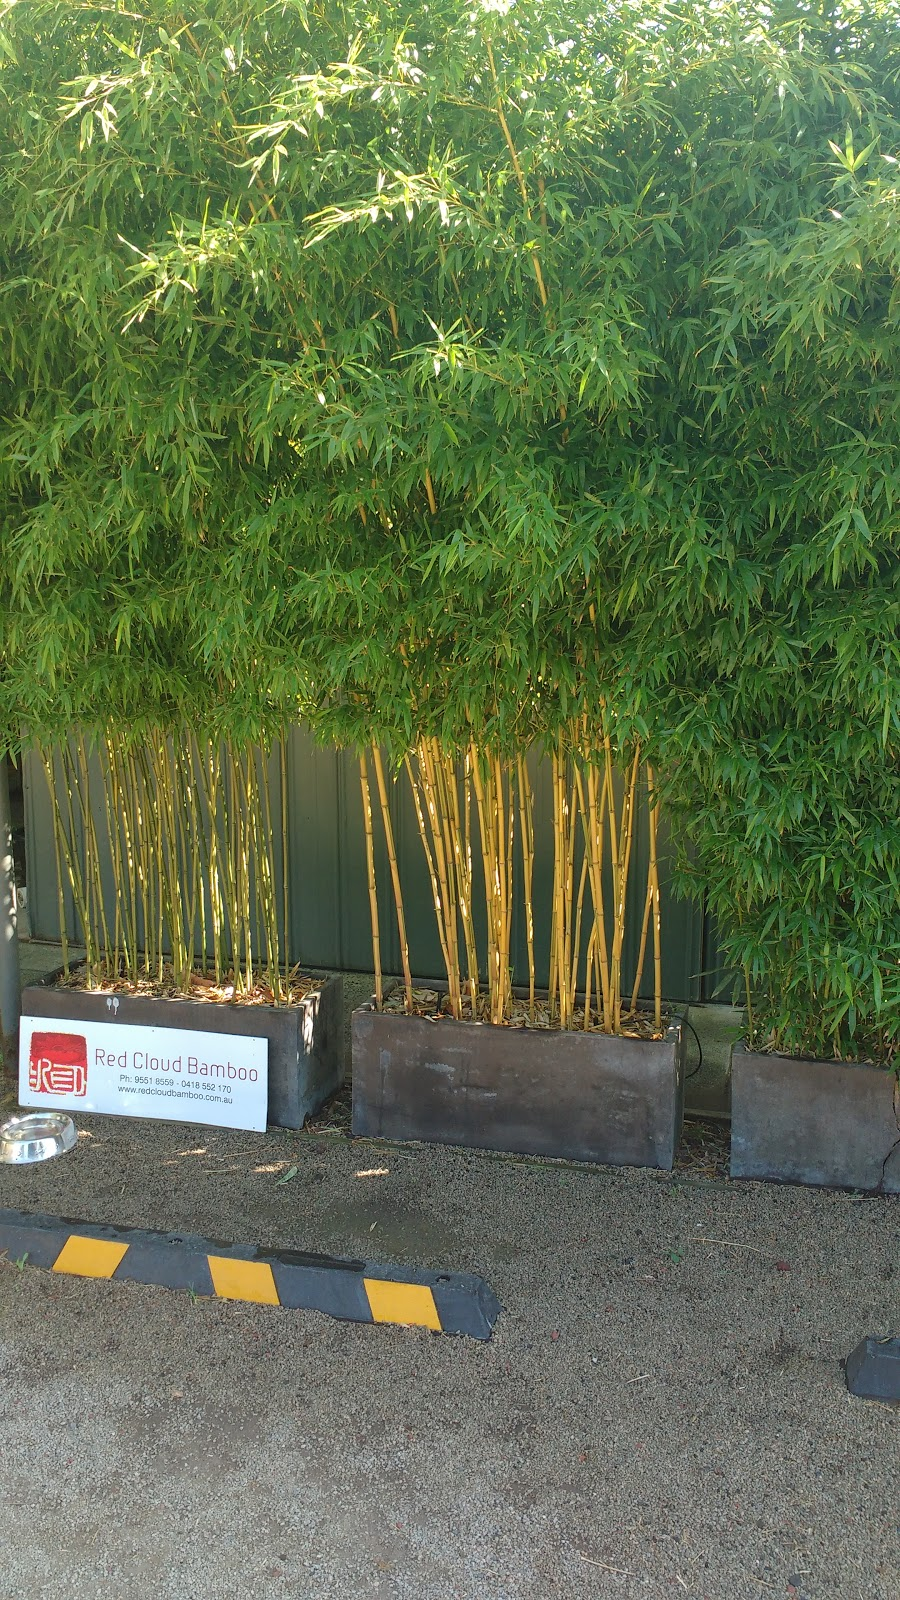 Red Cloud Bamboo   store   116 Old Dandenong Rd, Heatherton VIC 3202, Australia   0395518559 OR +61 3 9551 8559